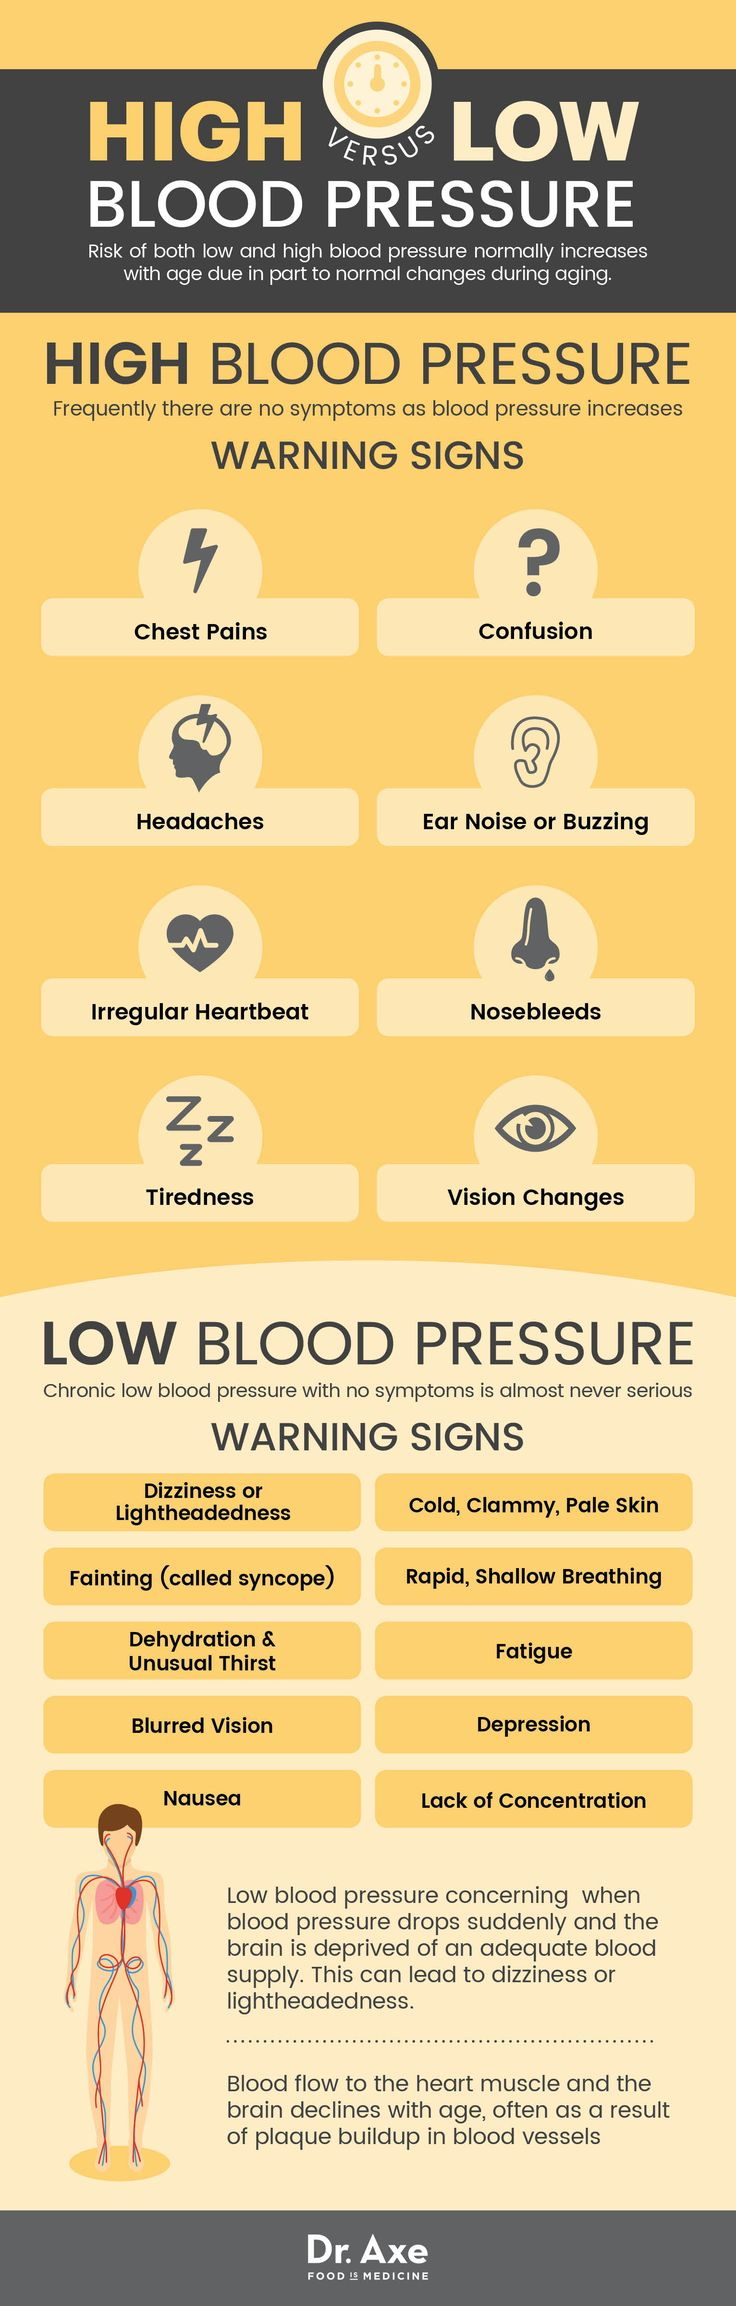 Best 25 blood pressure chart ideas on pinterest high blood best 25 blood pressure chart ideas on pinterest high blood pressure chart blood pressure remedies and low bp remedies nvjuhfo Image collections